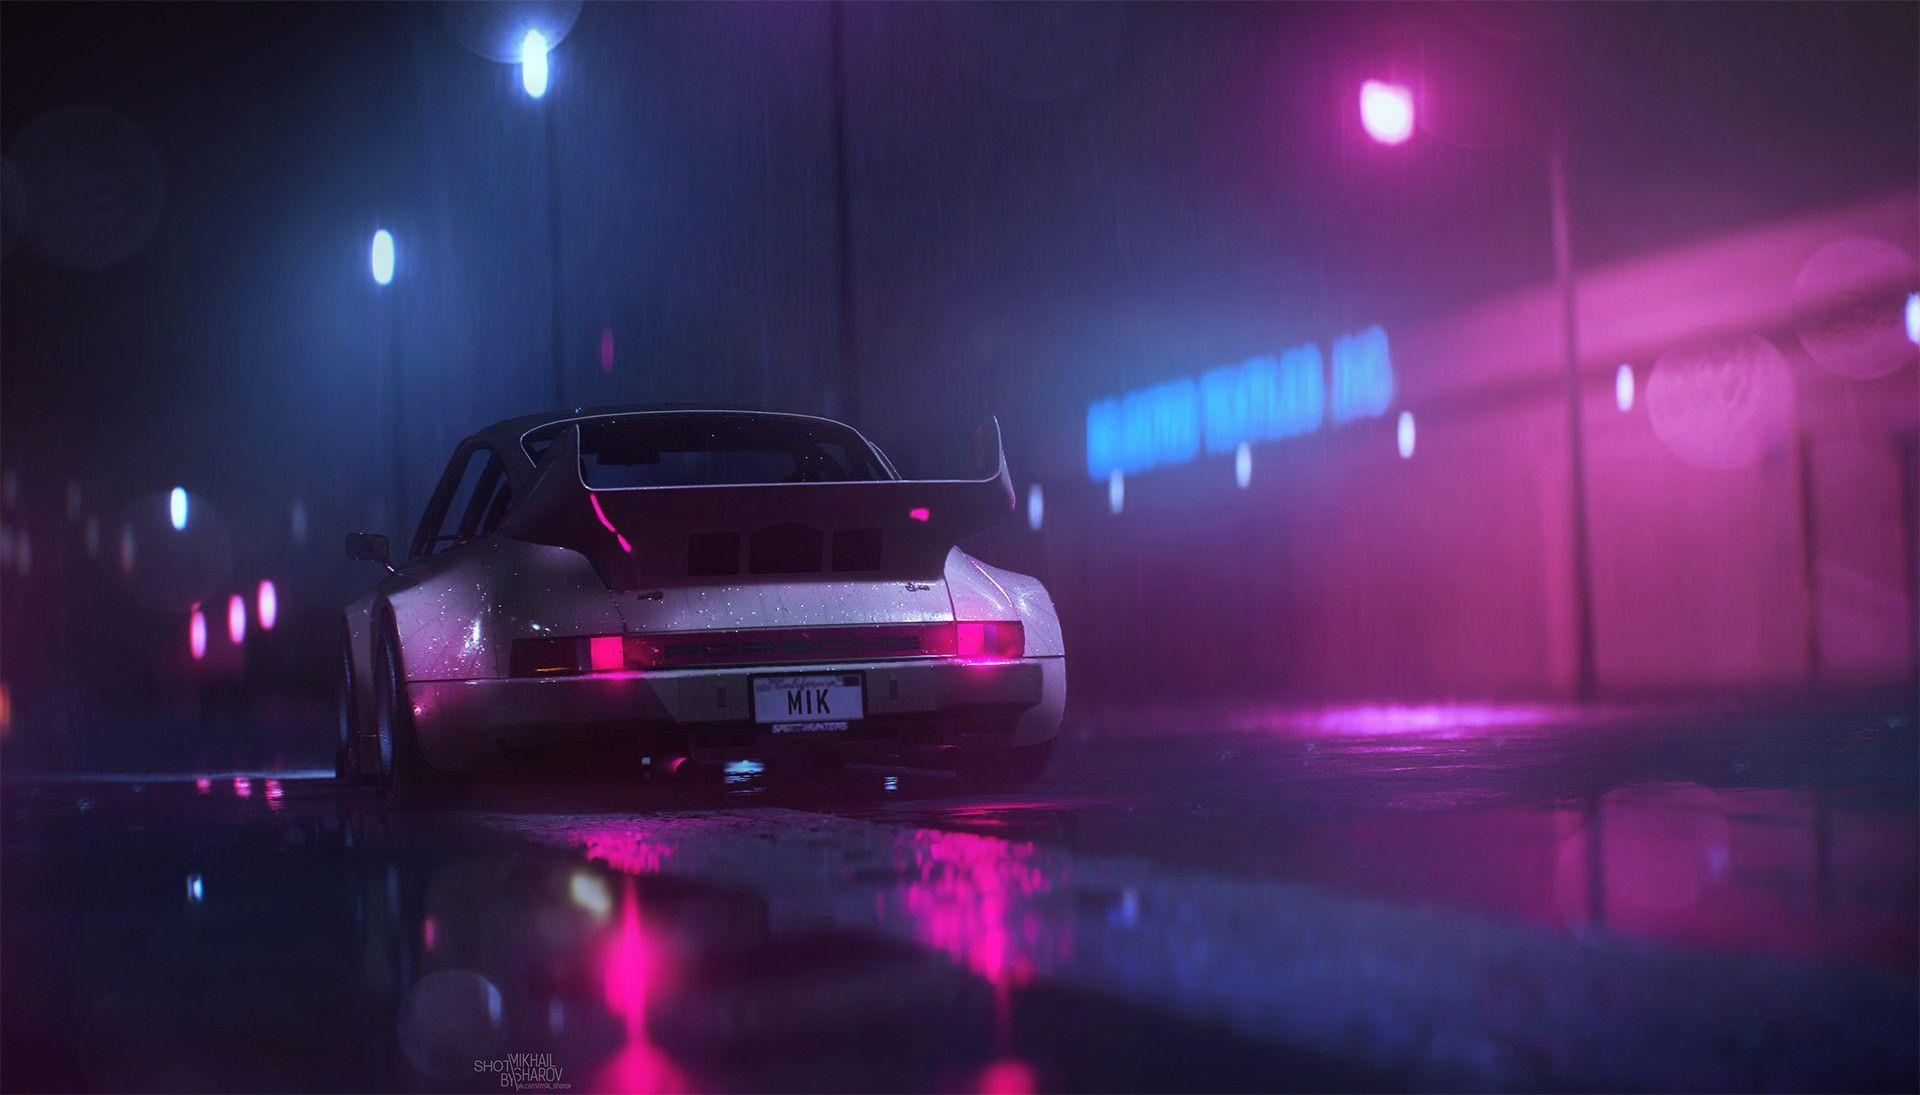 Some of the best new Retrowave/Synthwave wallpapers and artwork